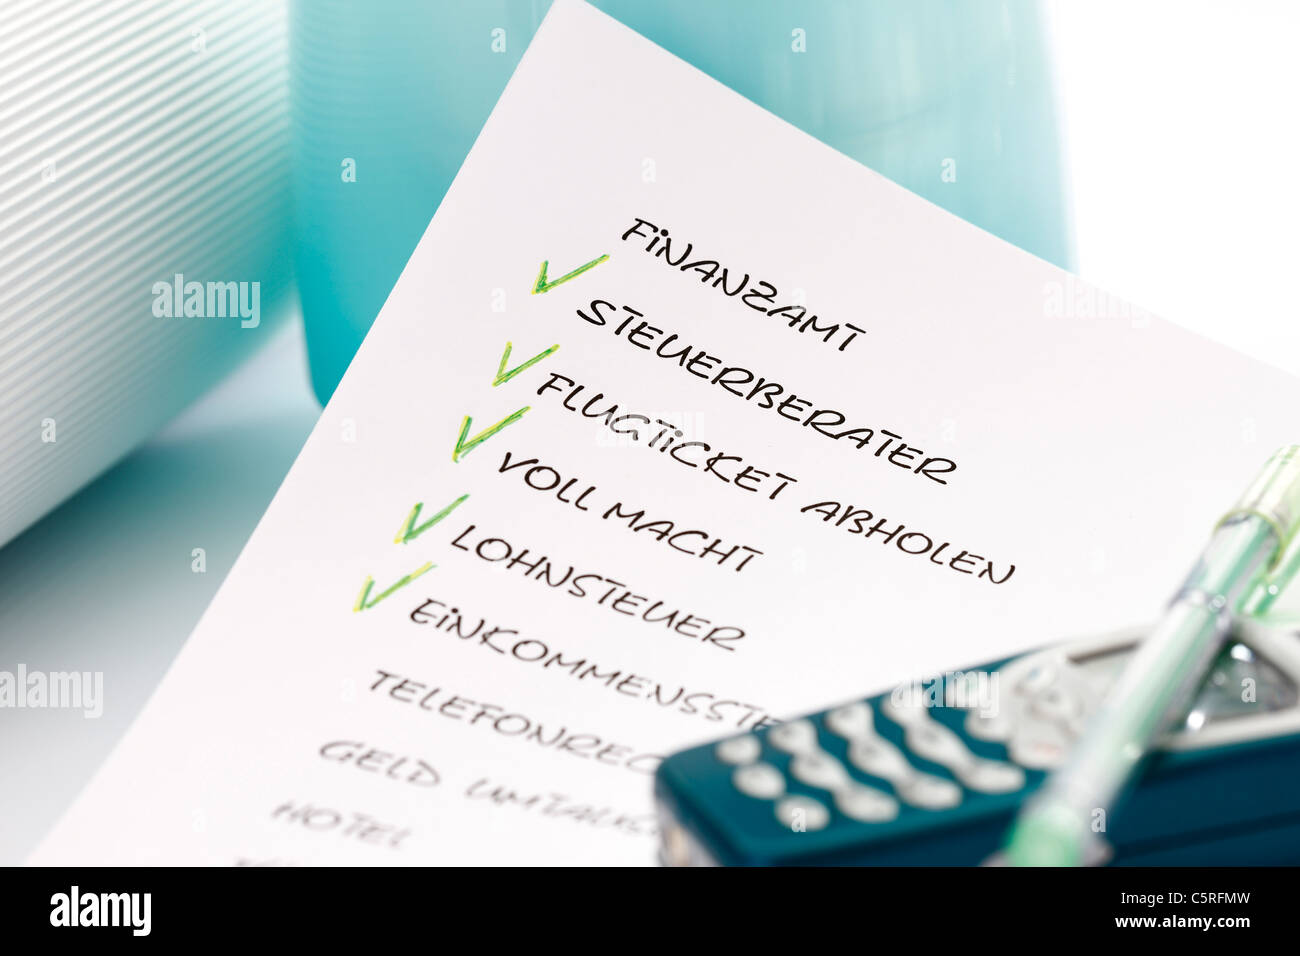 To Do List, ballpen and mobile phone, close-up - Stock Image